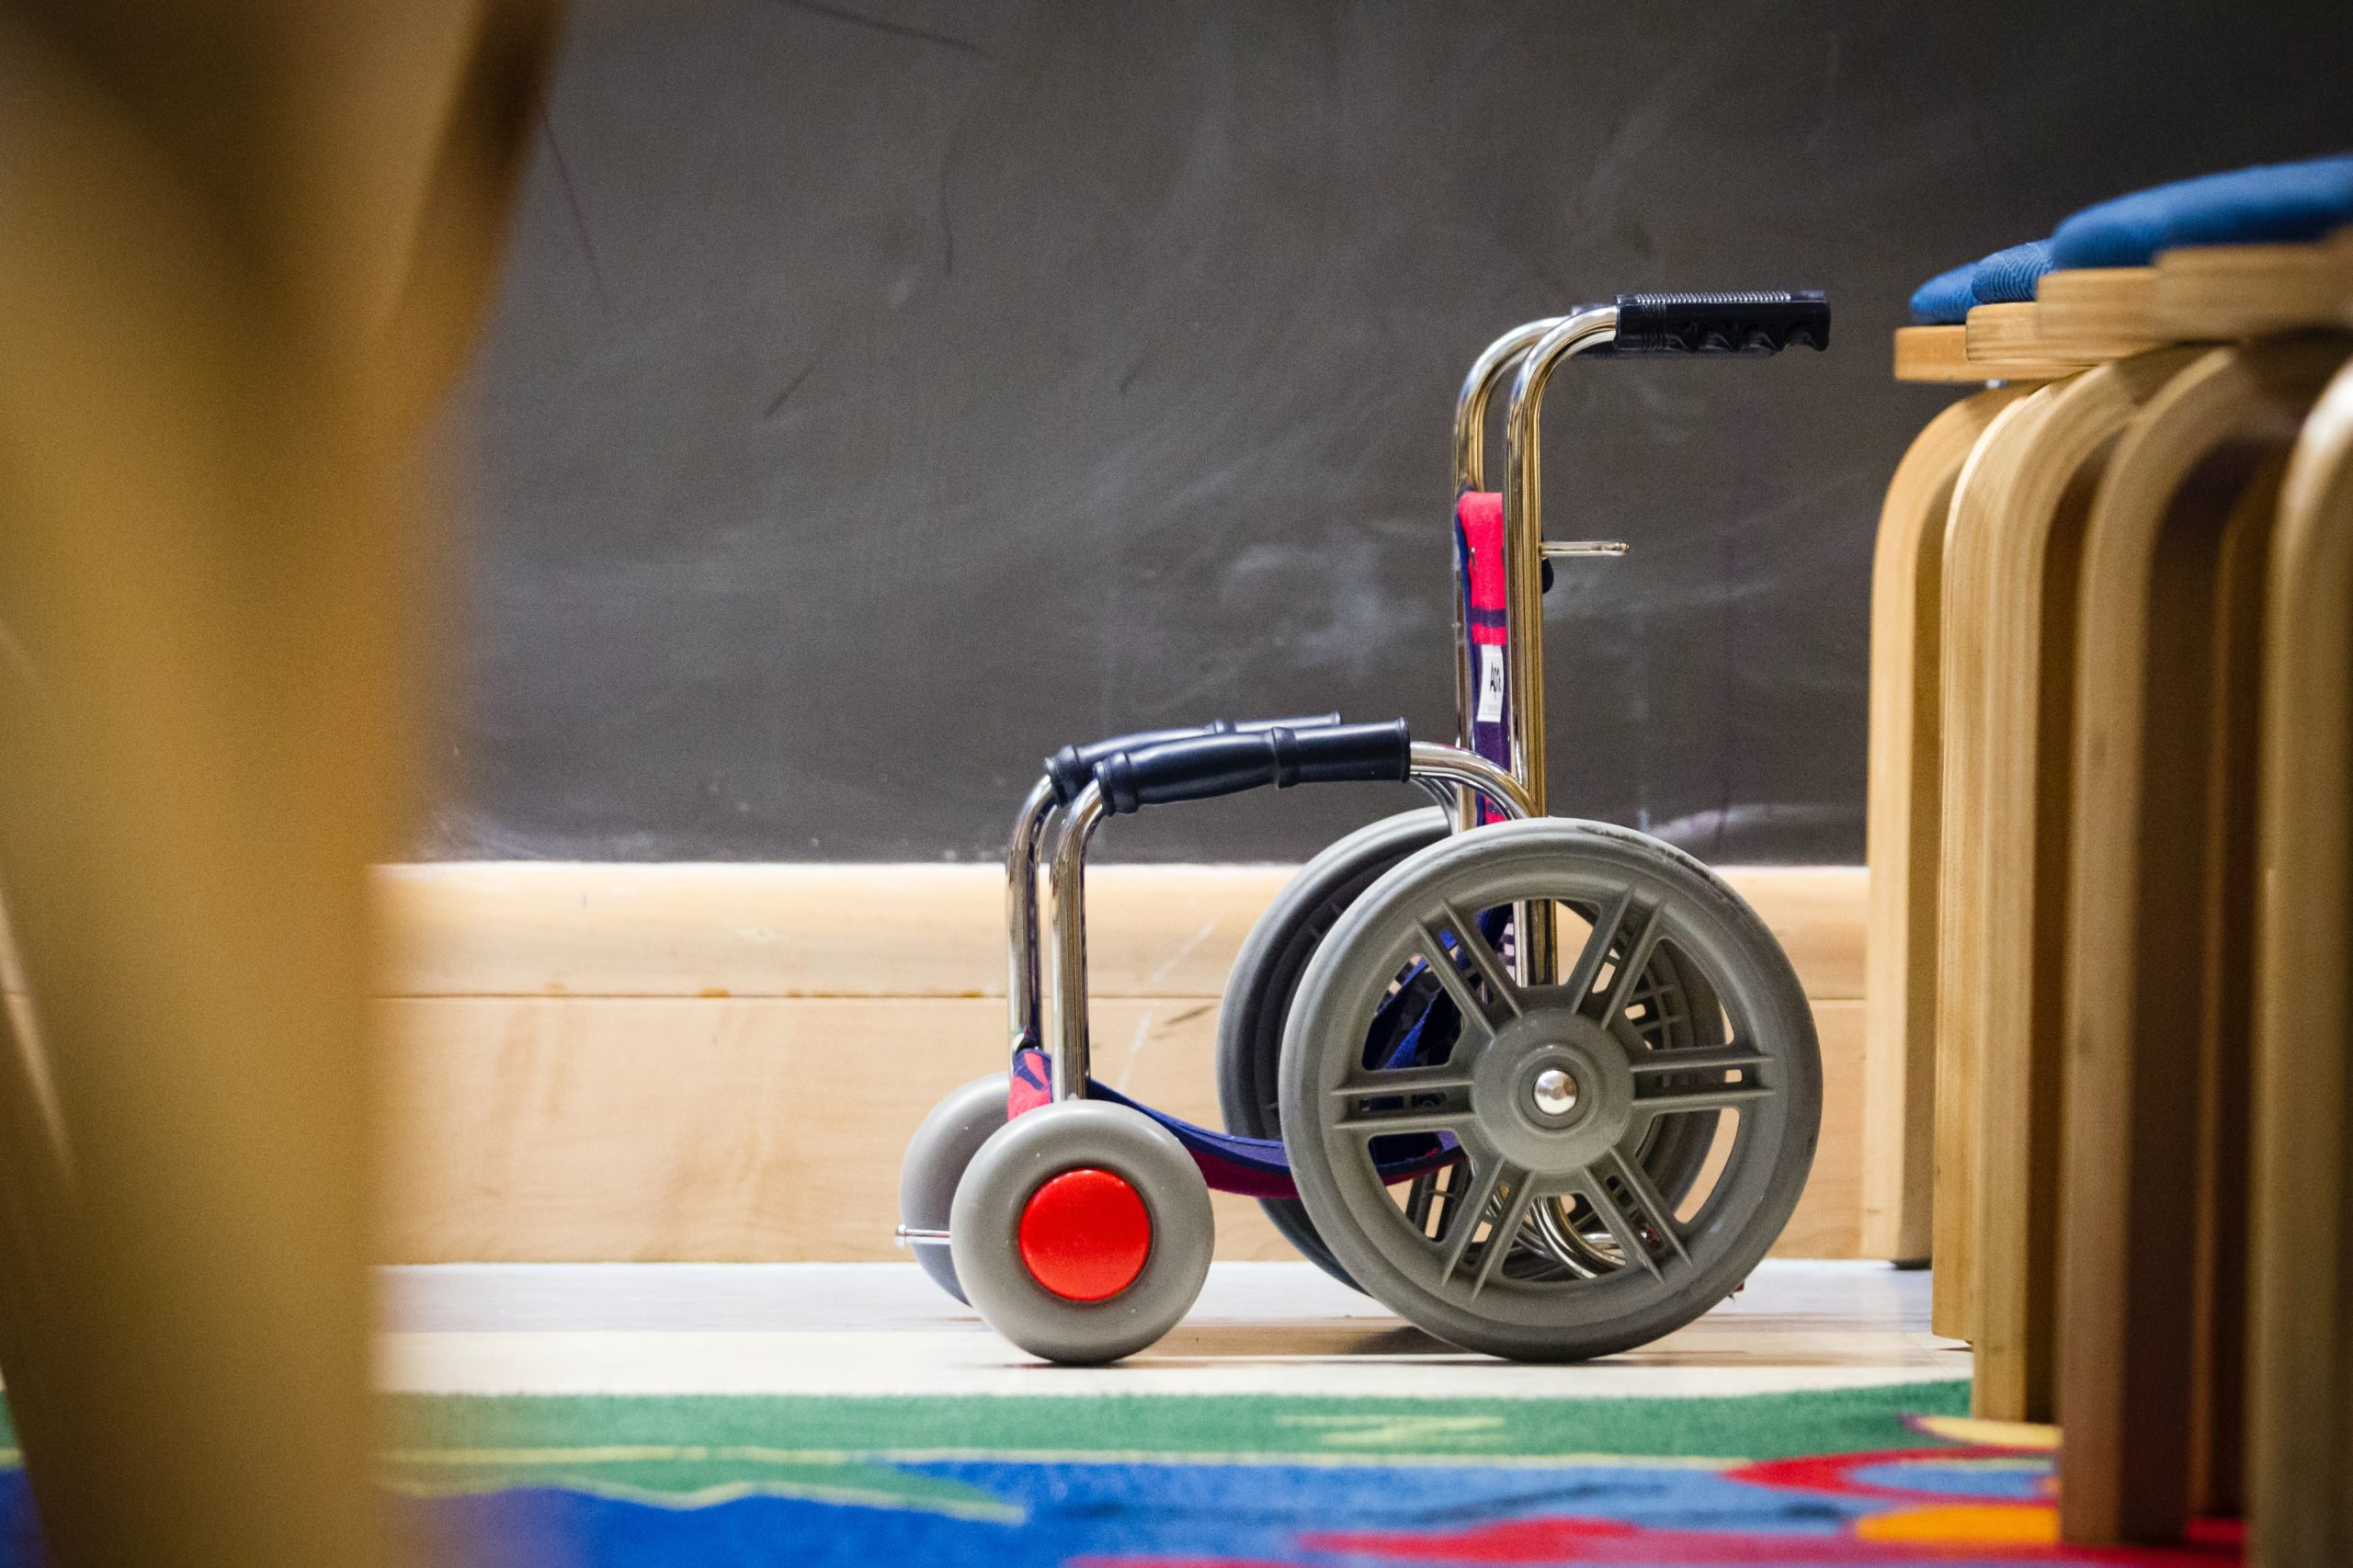 Total and Permanent Disability Insurance (TPD) – What is it?